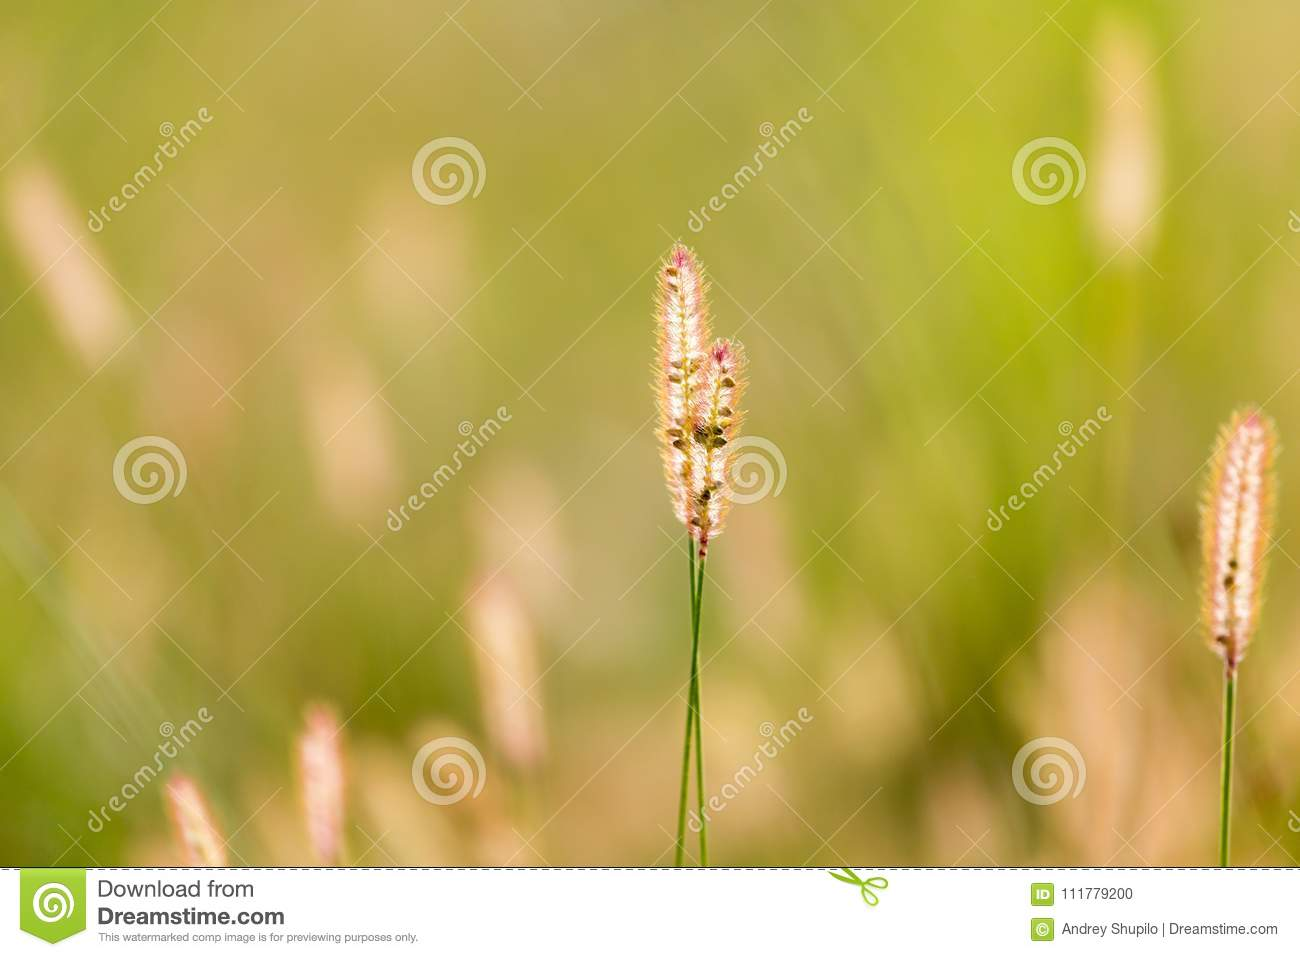 Ears of corn on the grass on the nature